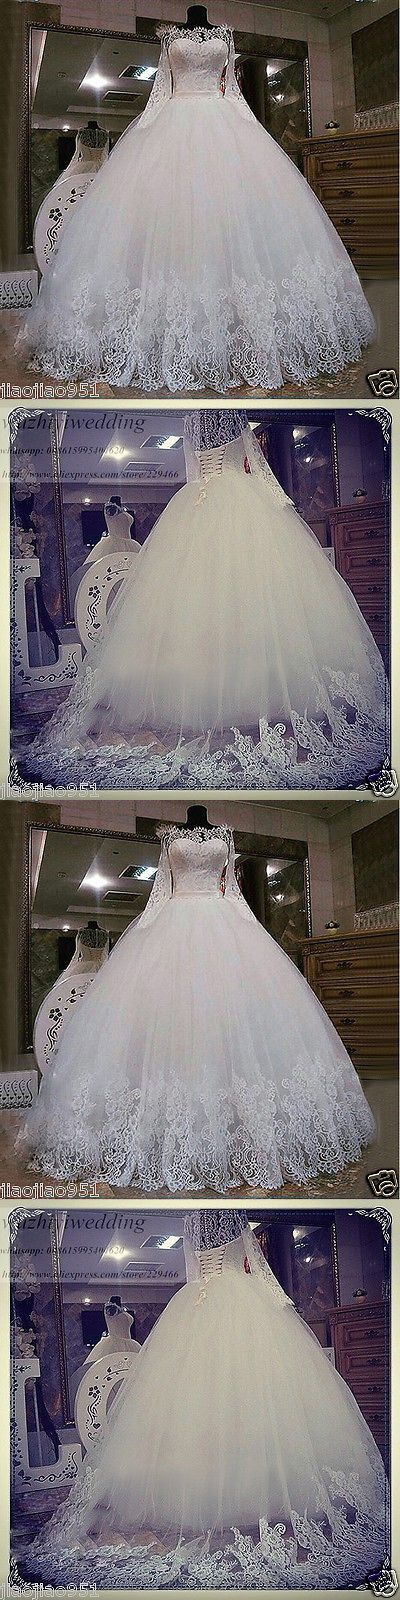 Wedding Dresses: 2017 New Lace White Ivory Wedding Dress Bridal Gown Custom 4 6 8 10 12 14 16 18+ -> BUY IT NOW ONLY: $138 on eBay!